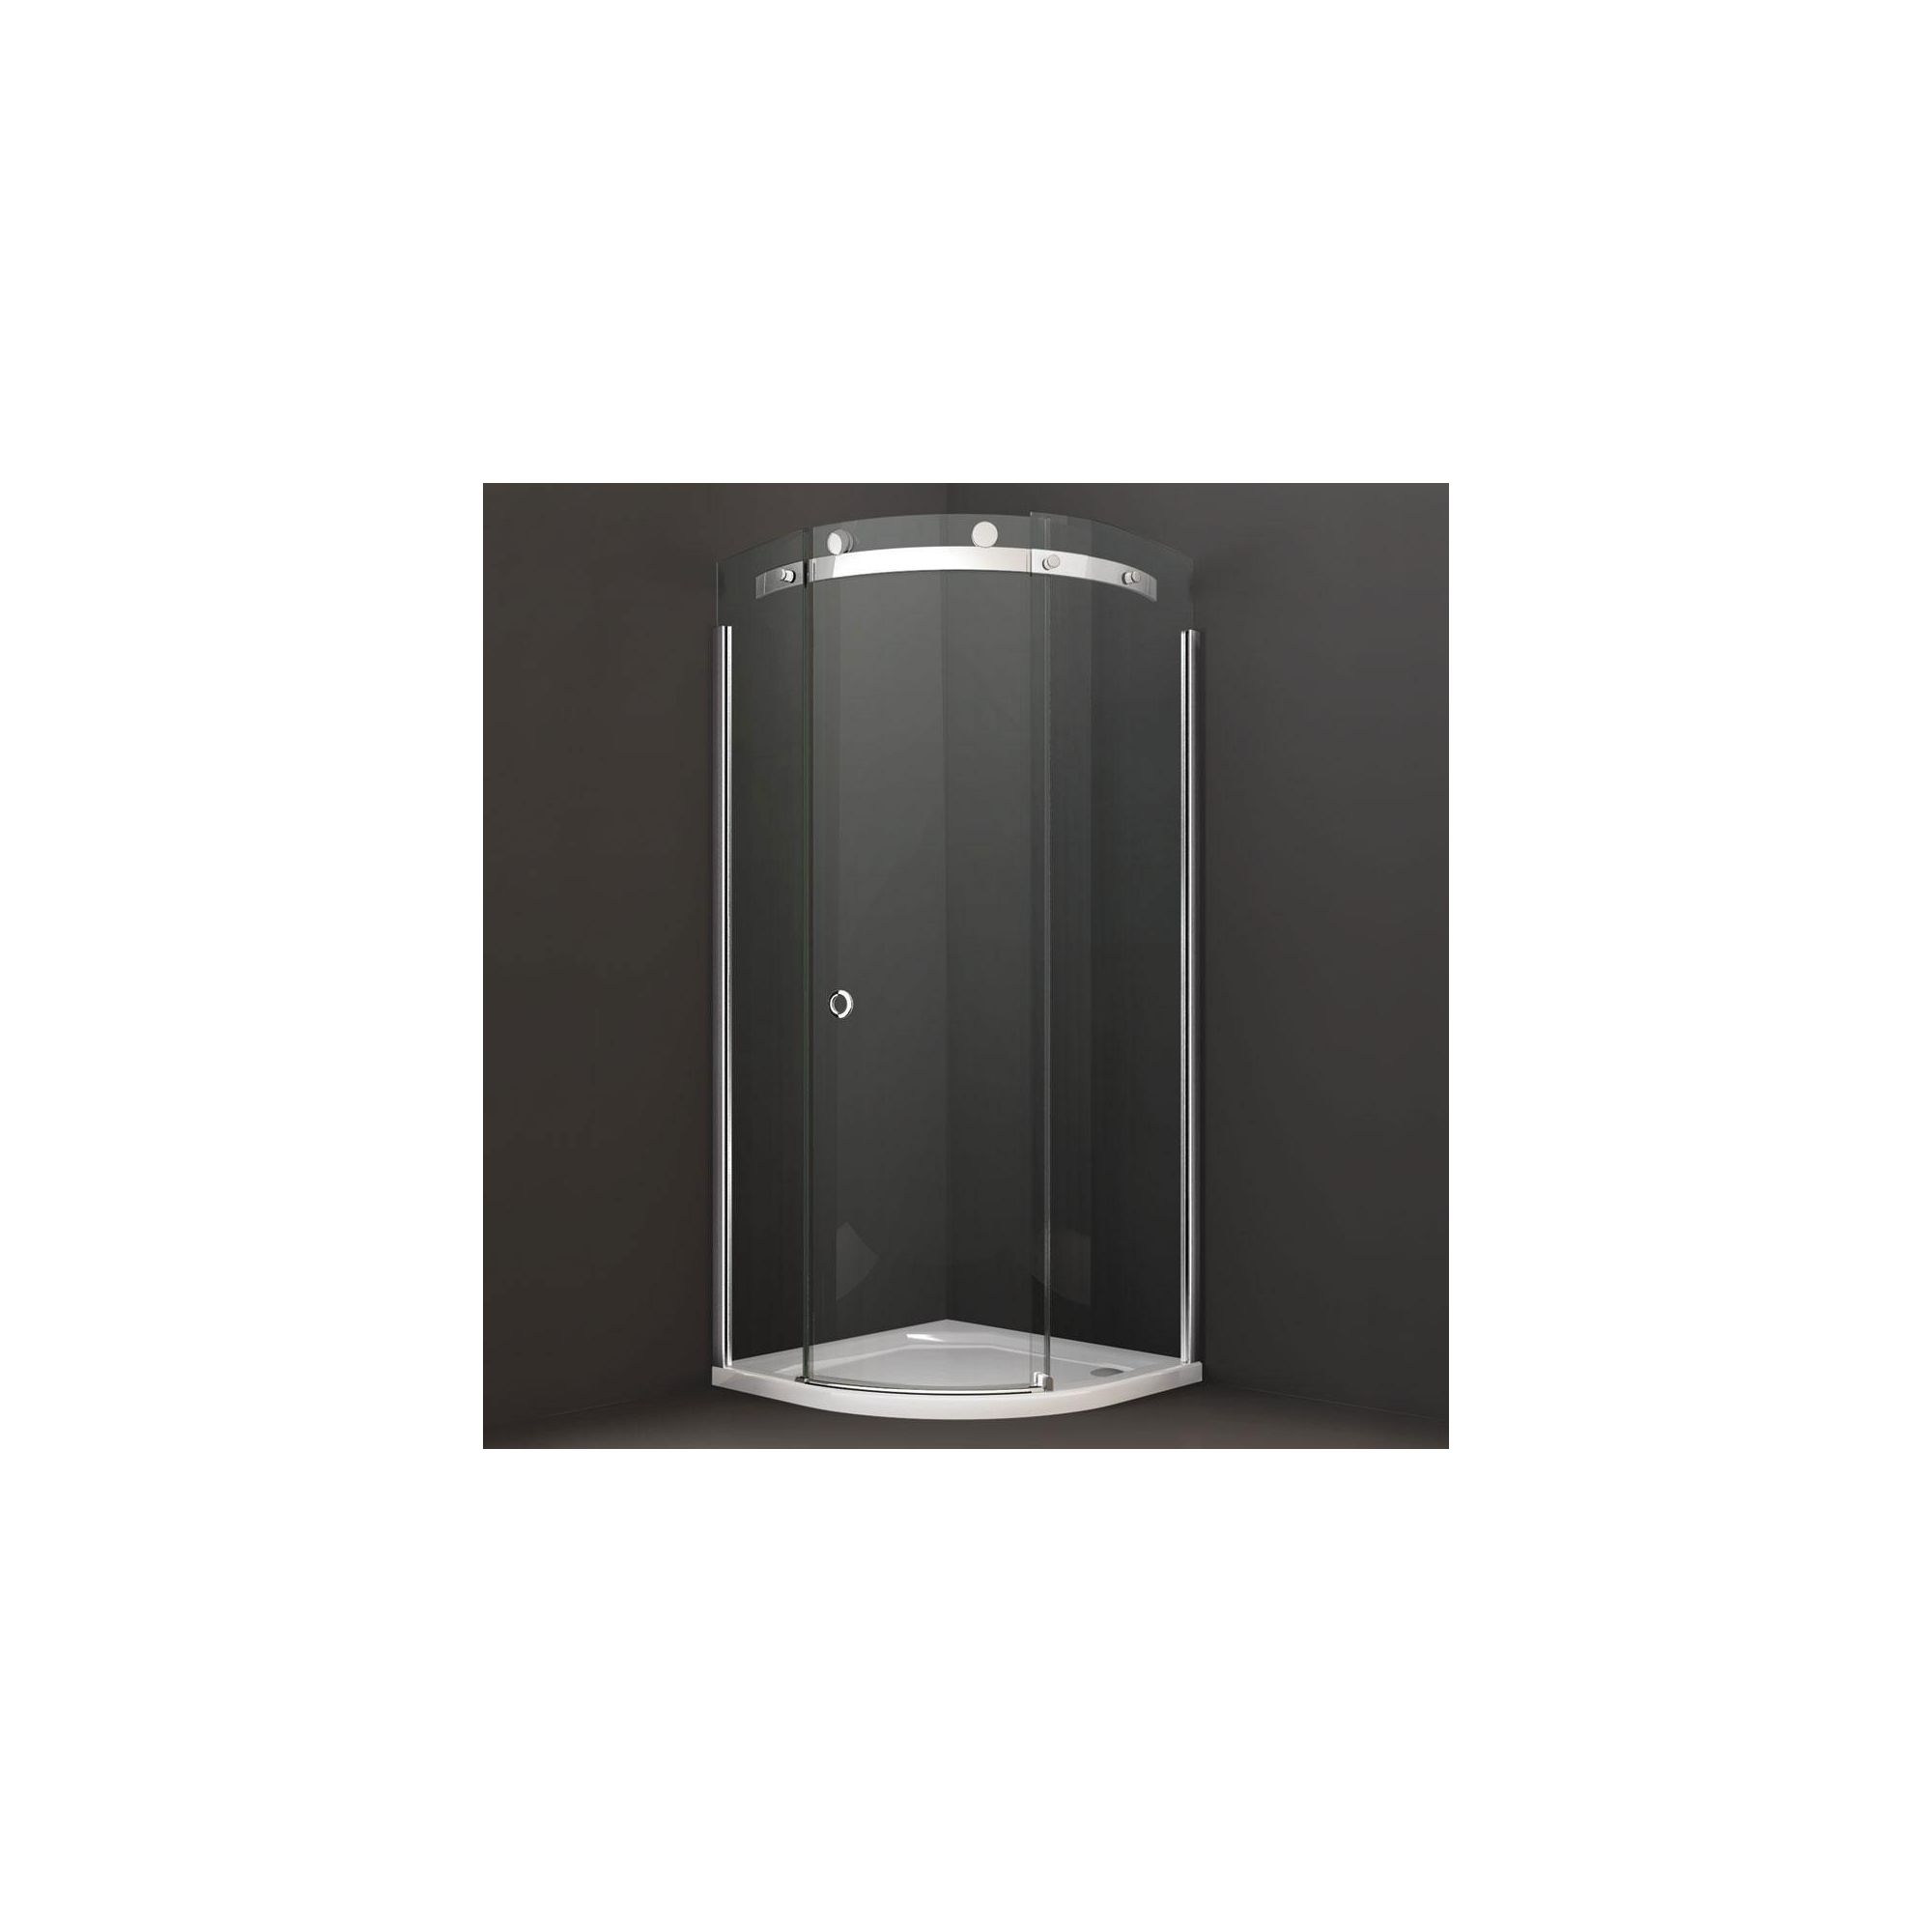 Merlyn Series 10 Quadrant Shower Door, 900mm x 900mm, 10mm Clear Glass, Right Handed at Tesco Direct